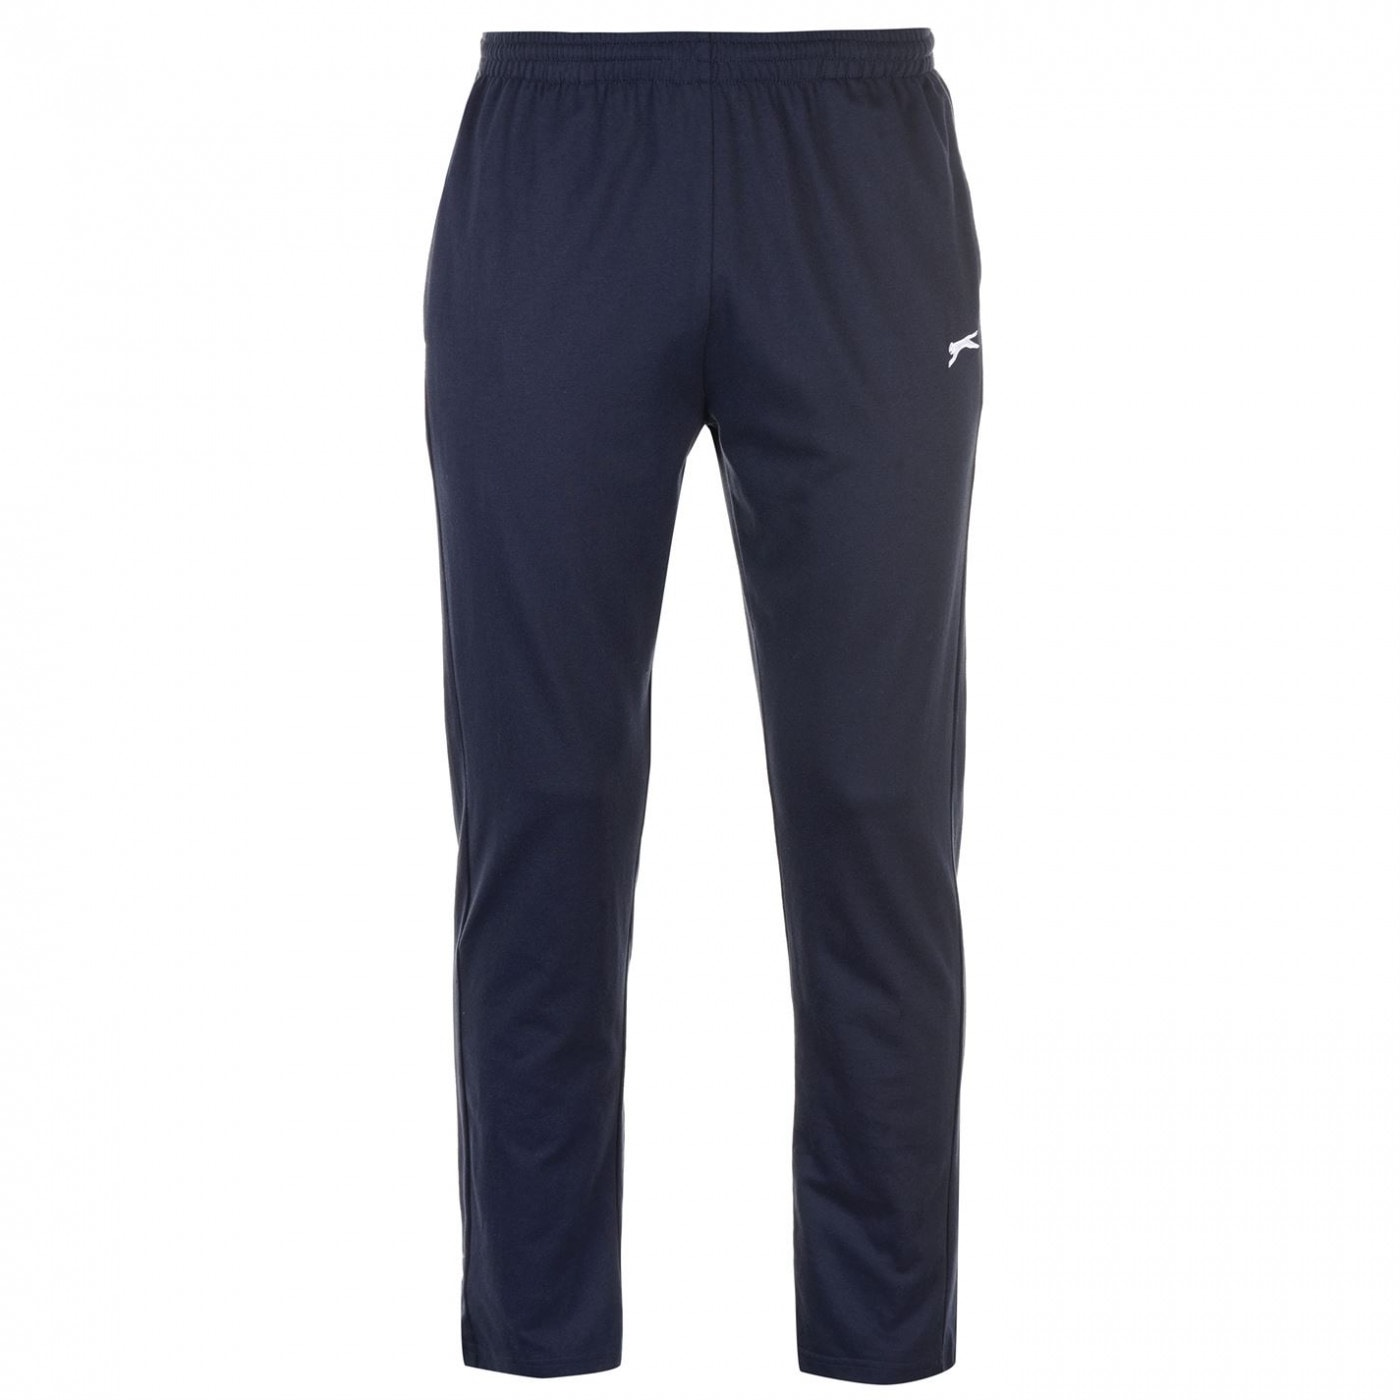 Slazenger Jersey Jogging Bottoms Mens